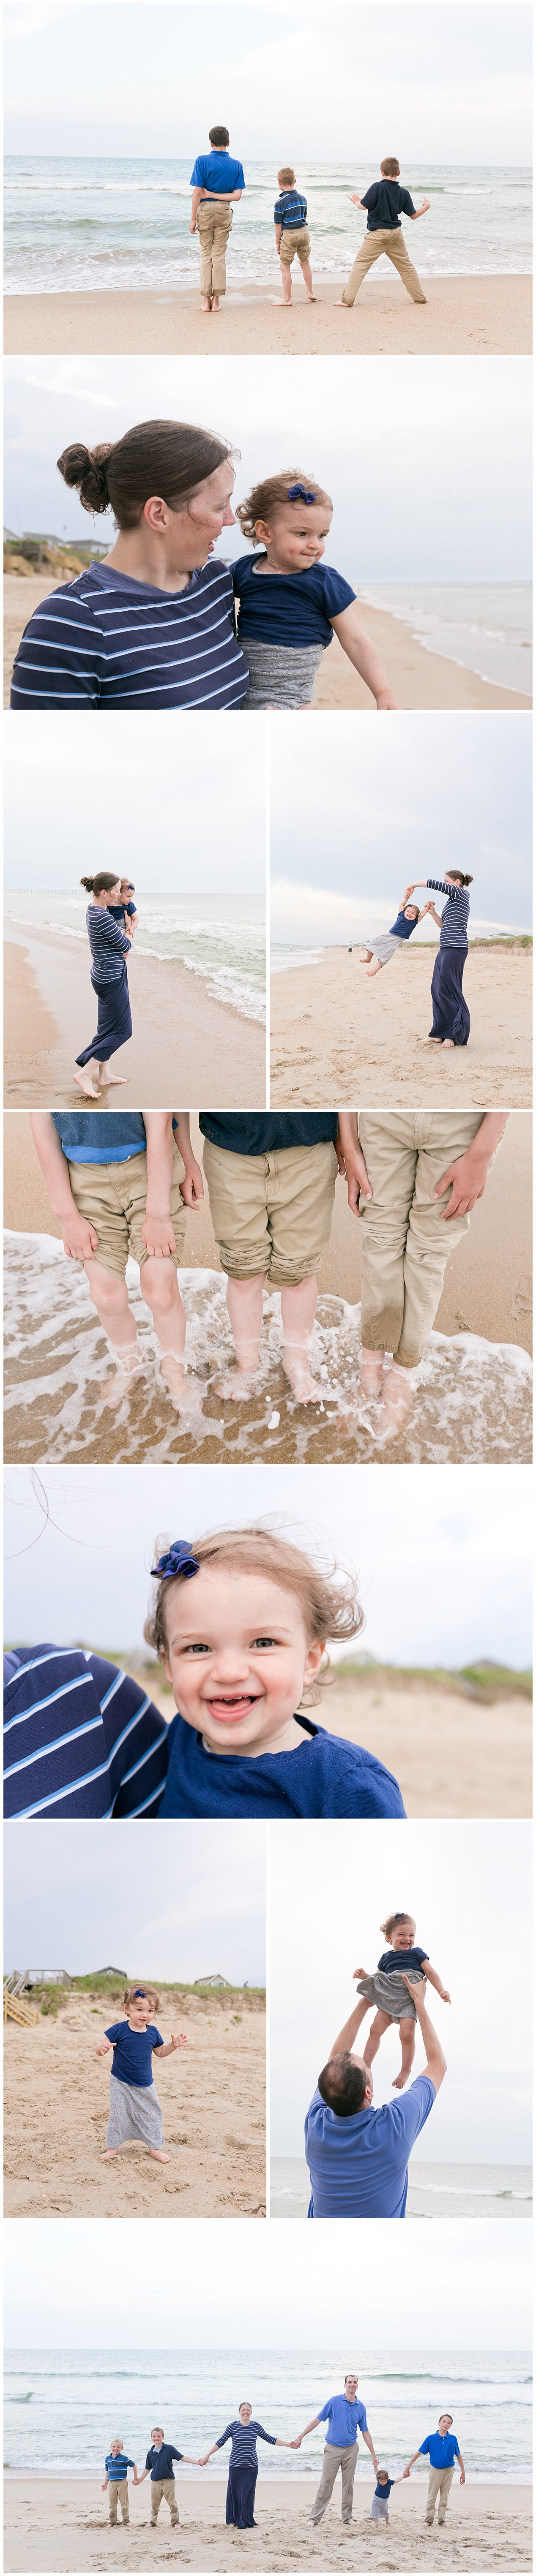 candid family pictures on the beach - Ocean Springs photographer